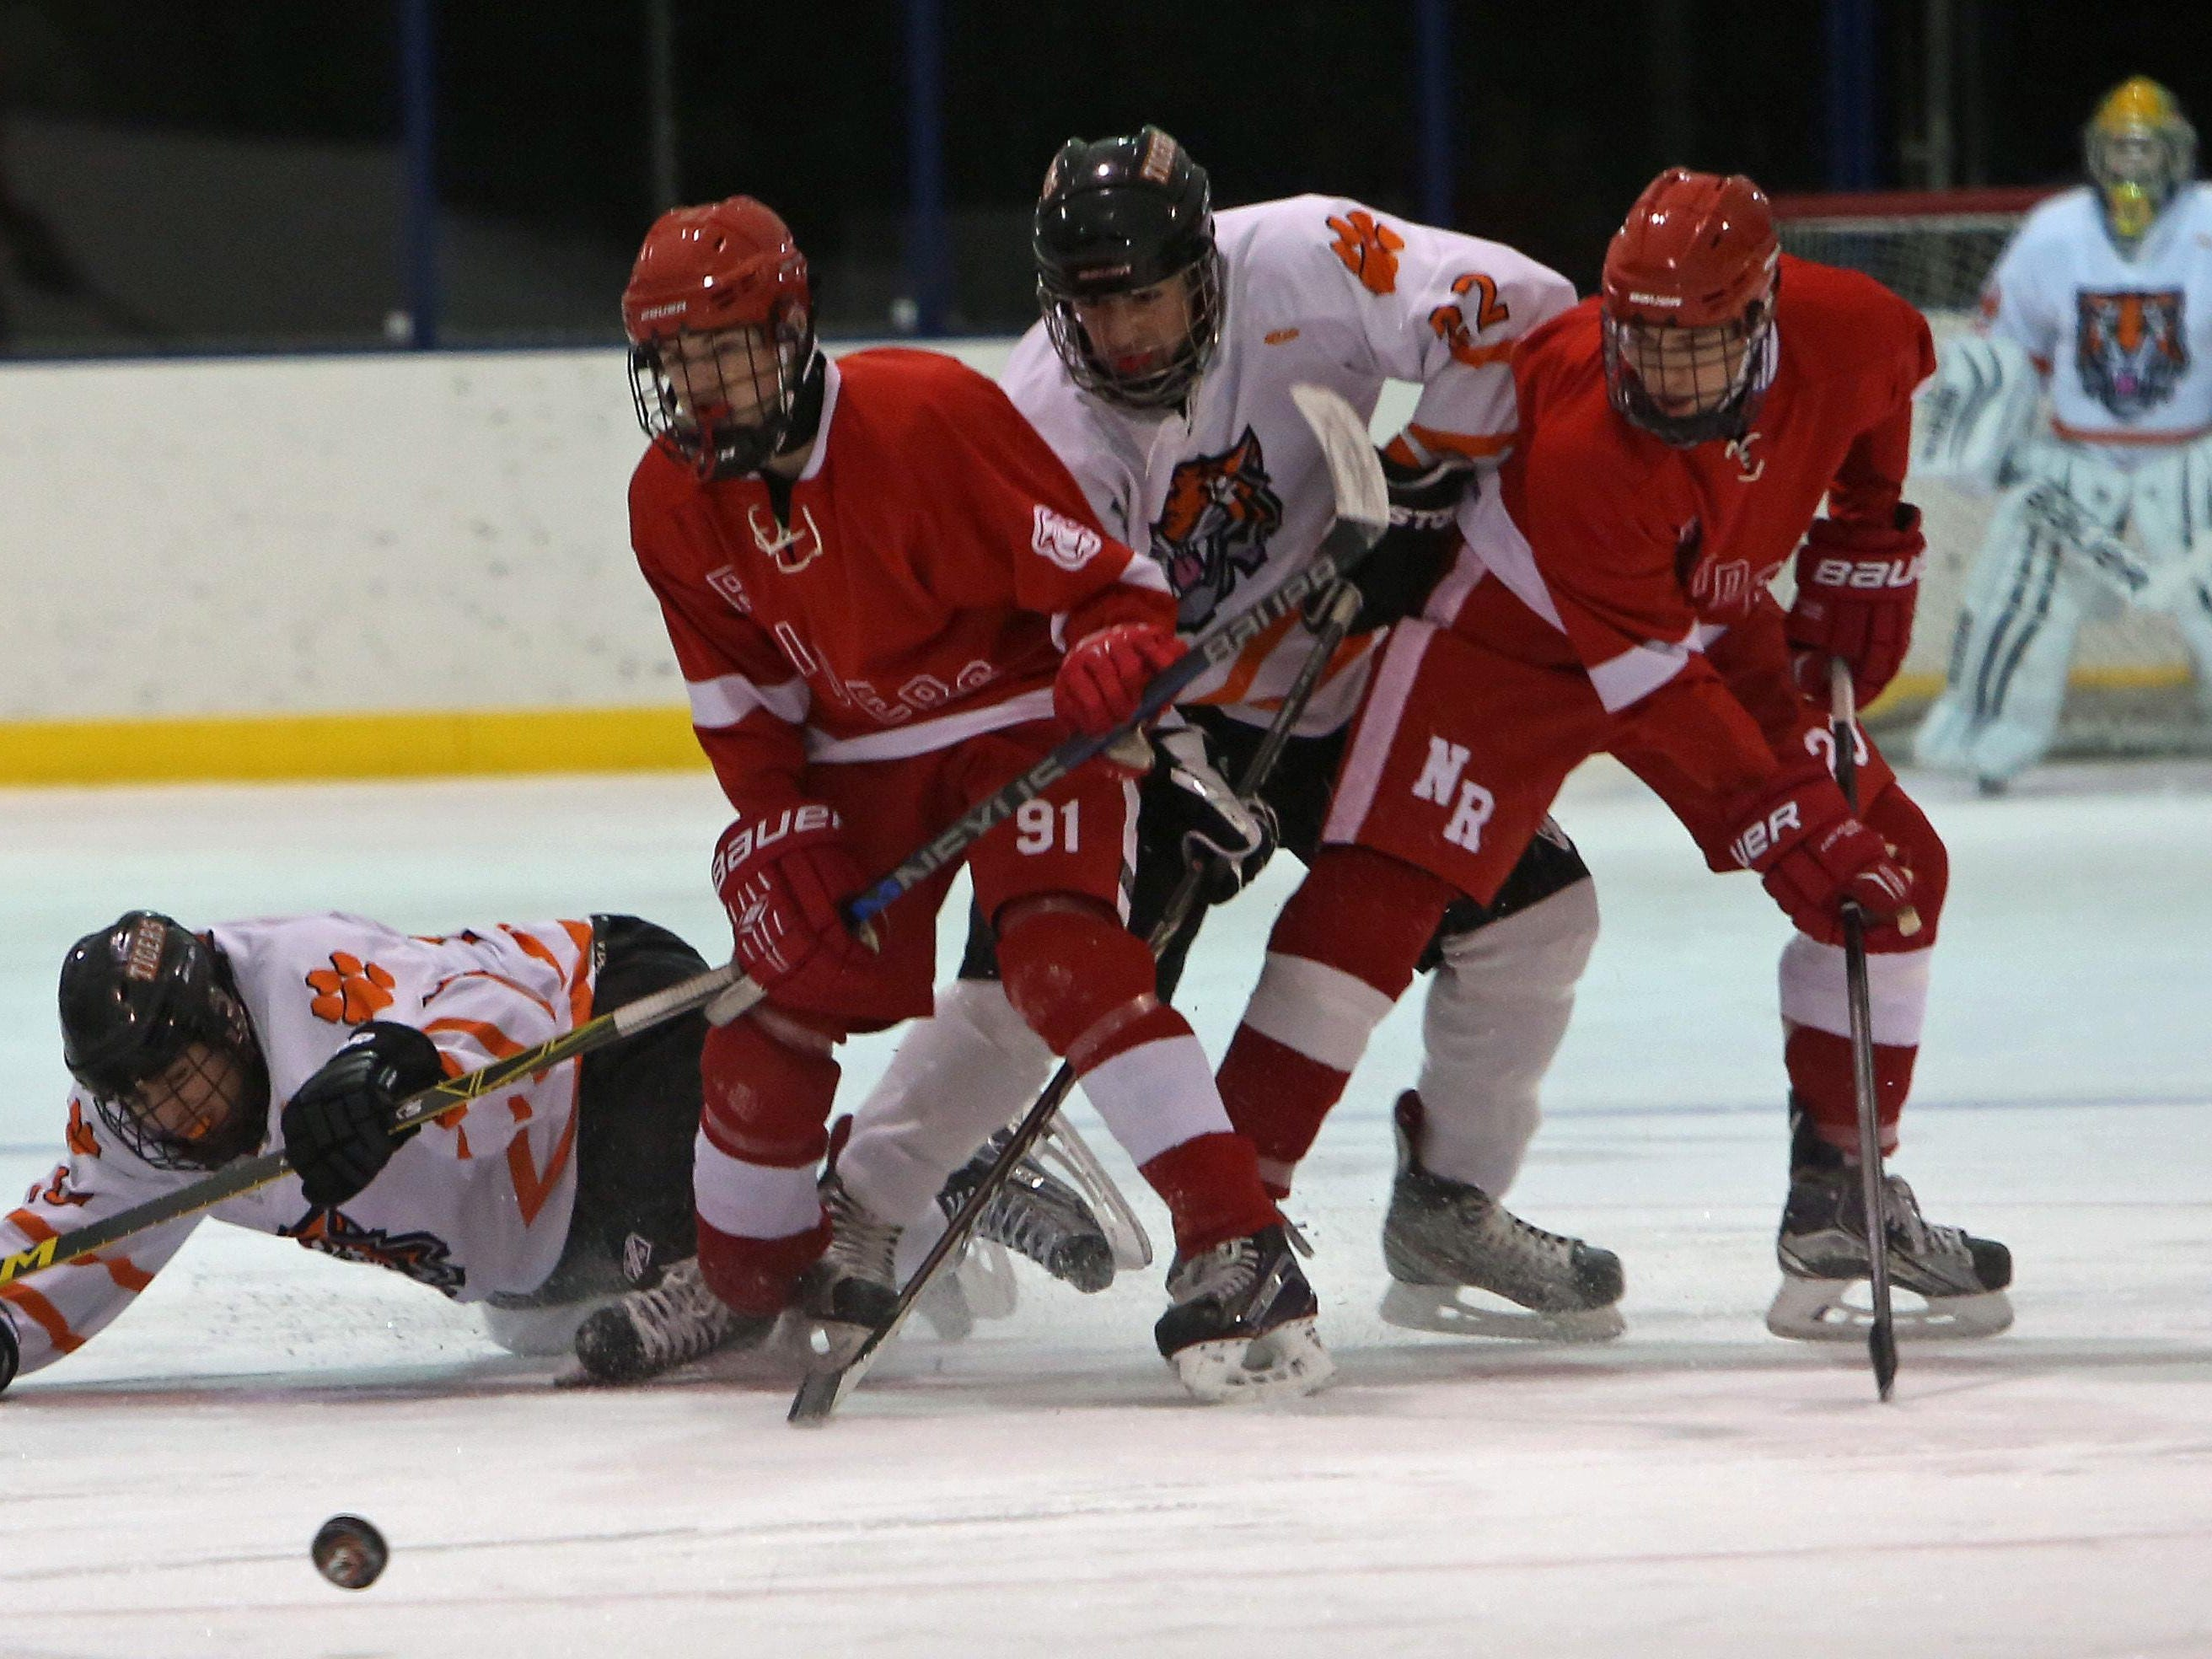 White Plains' Harry Seymour, left, and Chris Schiavone, second from left, battle for the puck with North Rockland's Chris Hilliard (91) during their game at Ebersole Ice Rink in White Plains Thursday. The game ended in a 4-4 tie.